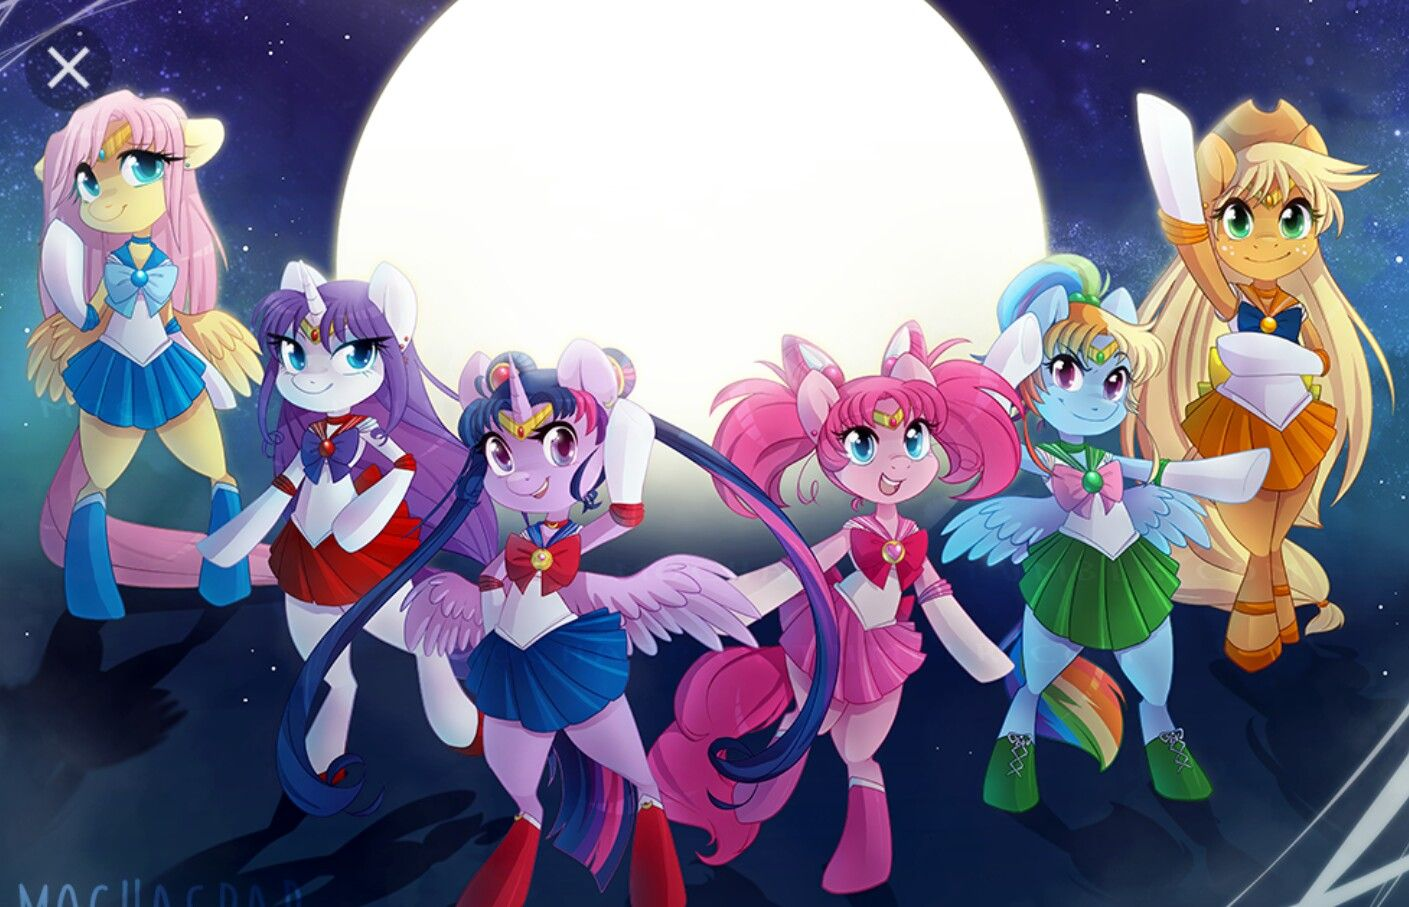 Mlp sailor moon | Pony Crossovers | Pinterest | MLP, Pony ...